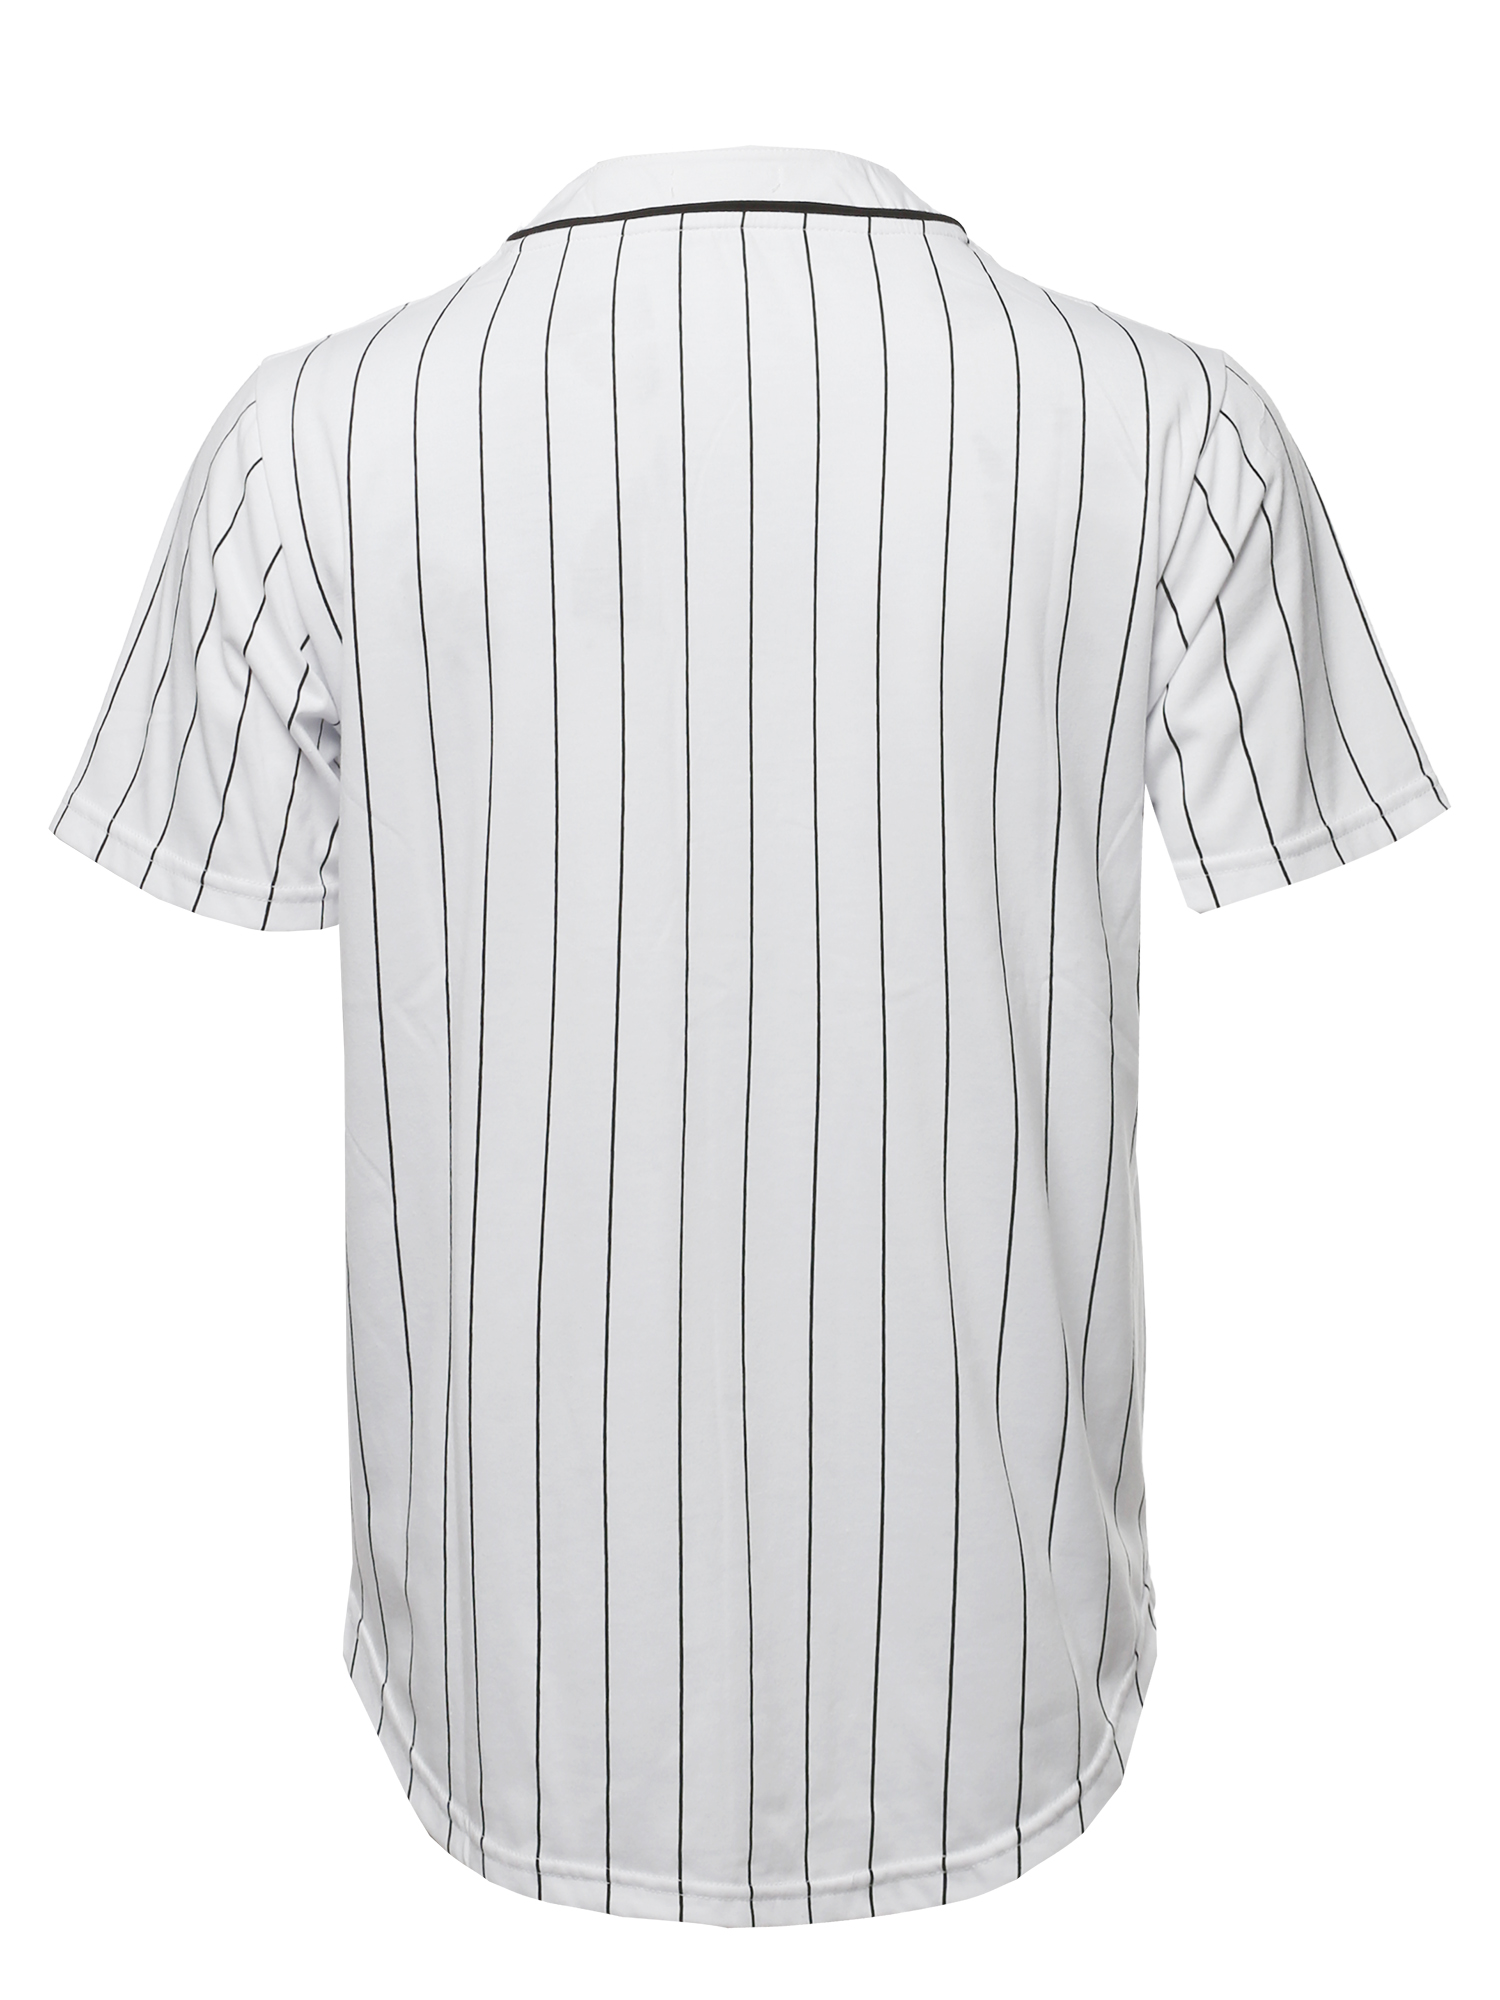 FashionOutfit Men/'s Solid Hipster Baseball Team Pin Stripe Jersey Top